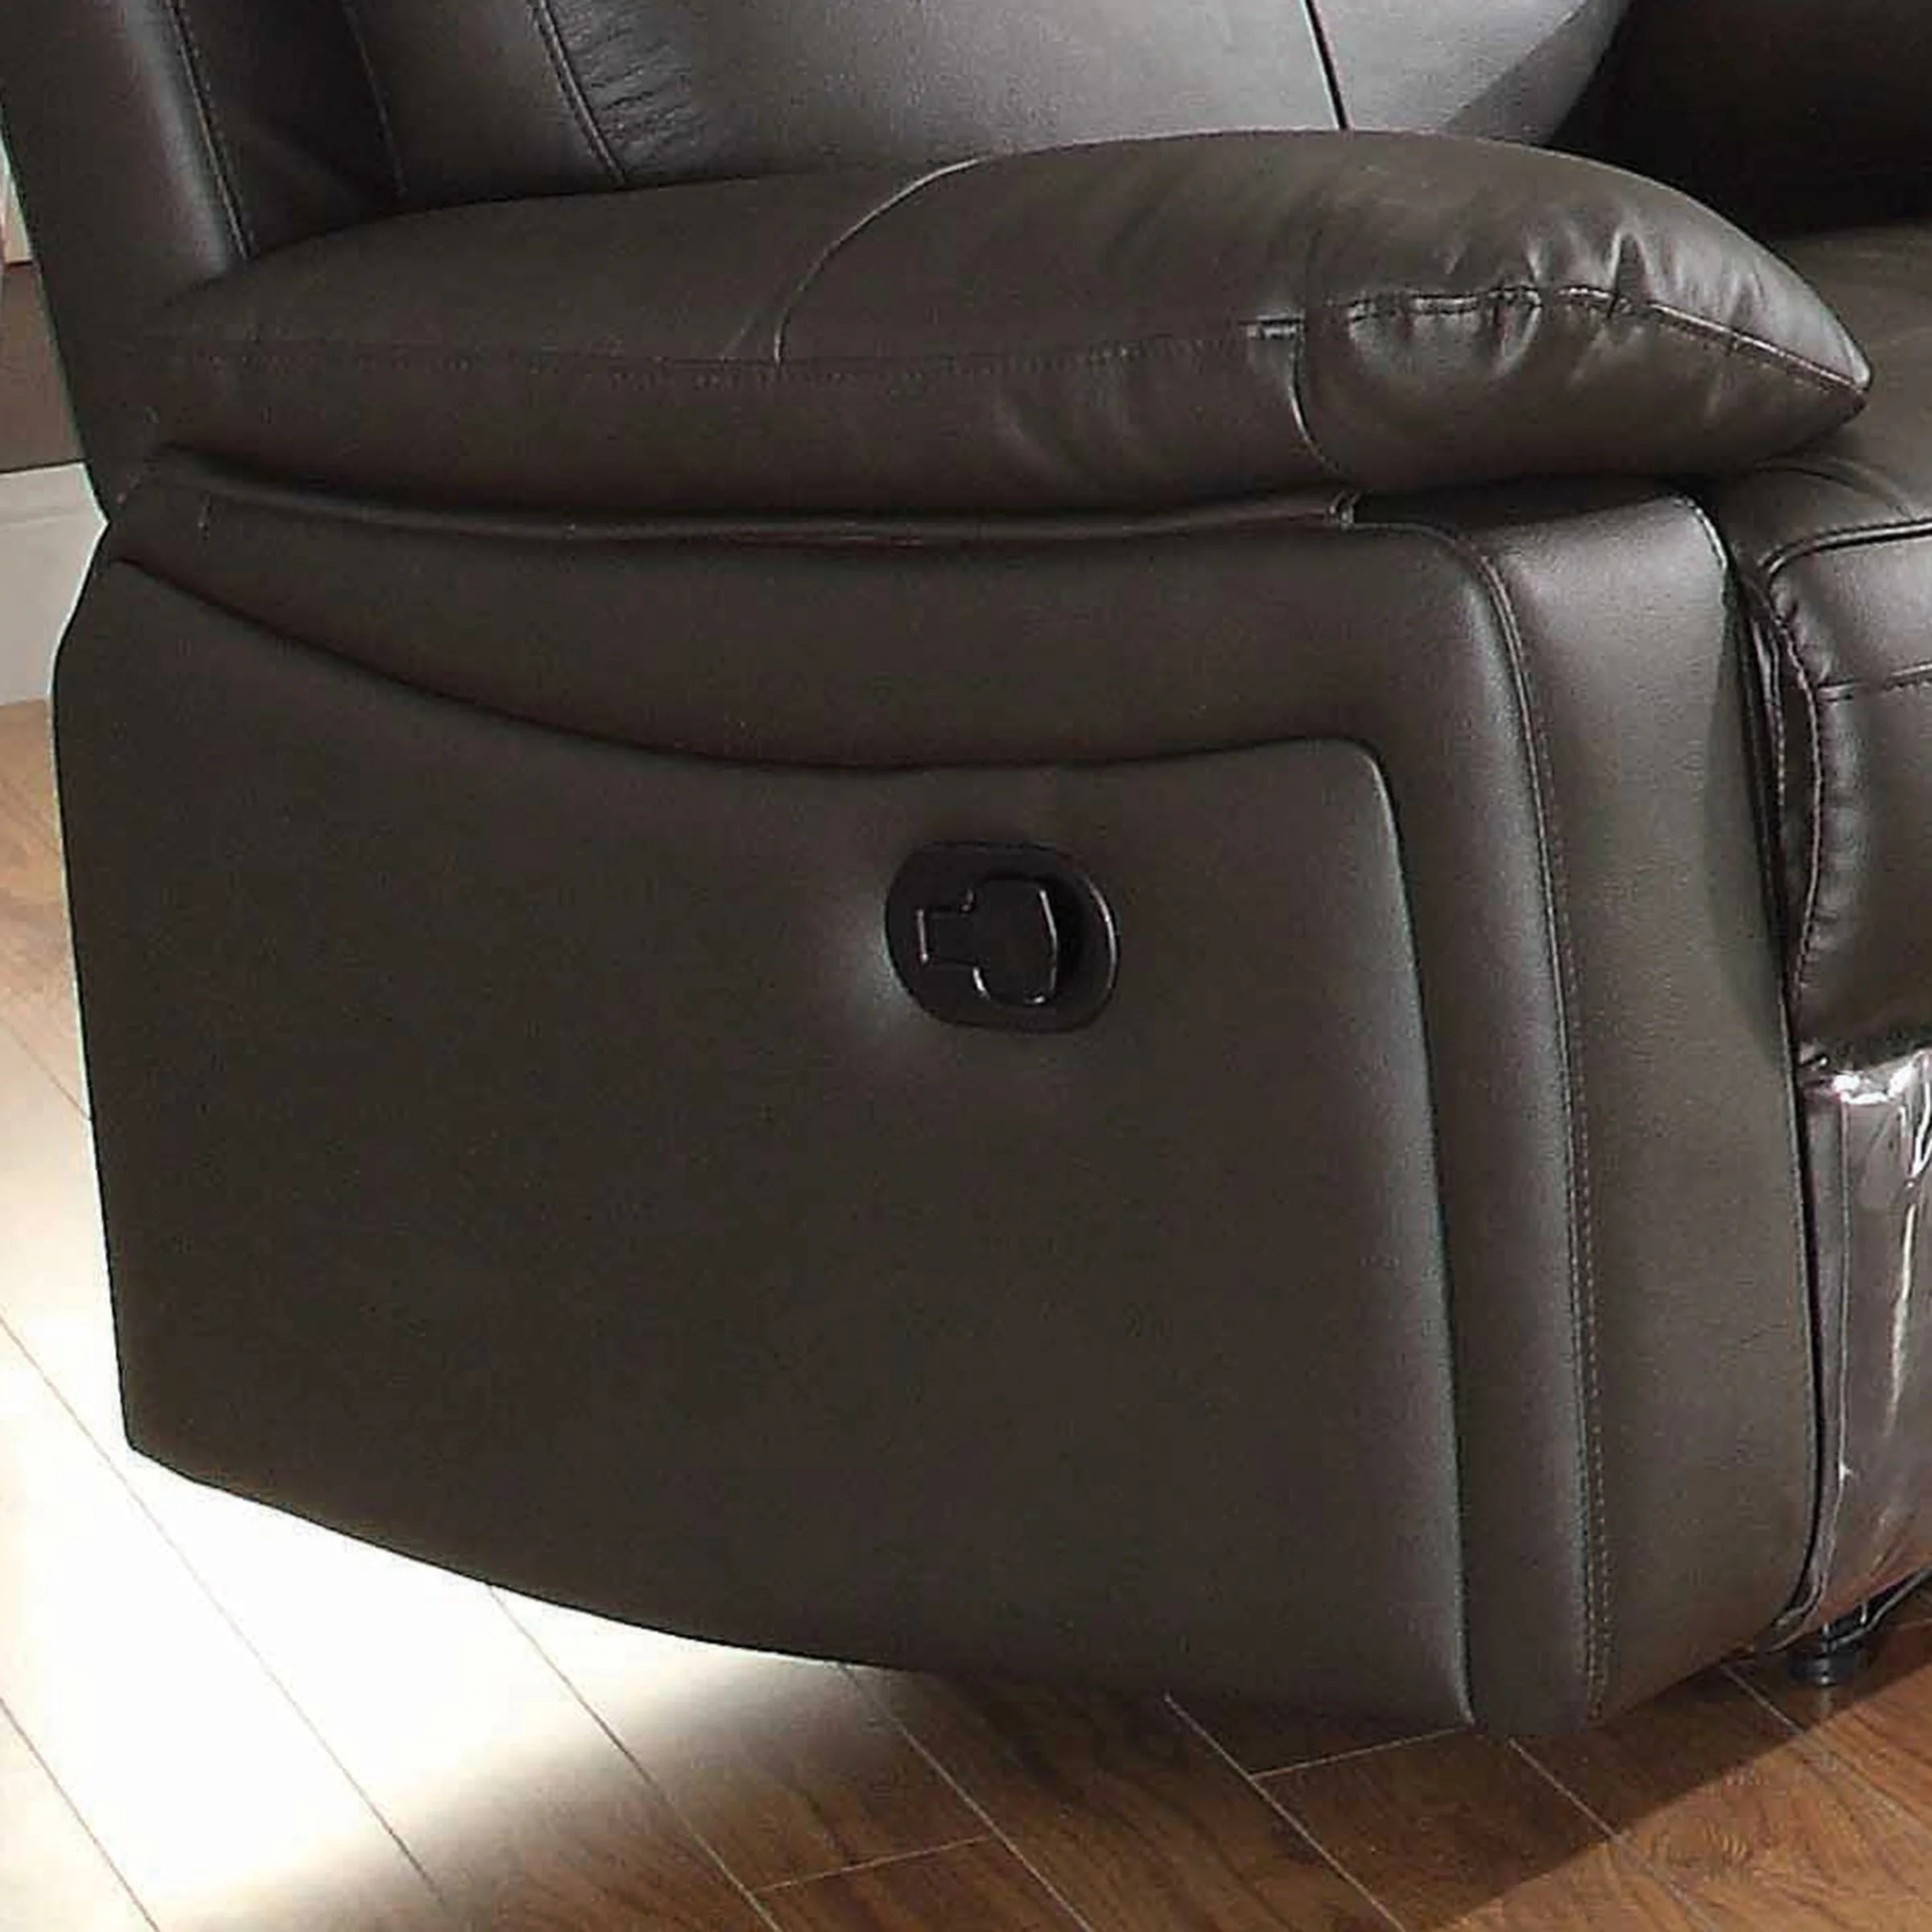 ryker reclining sofa and loveseat 2 piece set bernhardt walsh shop leather on sale free shipping today overstock com 11854520